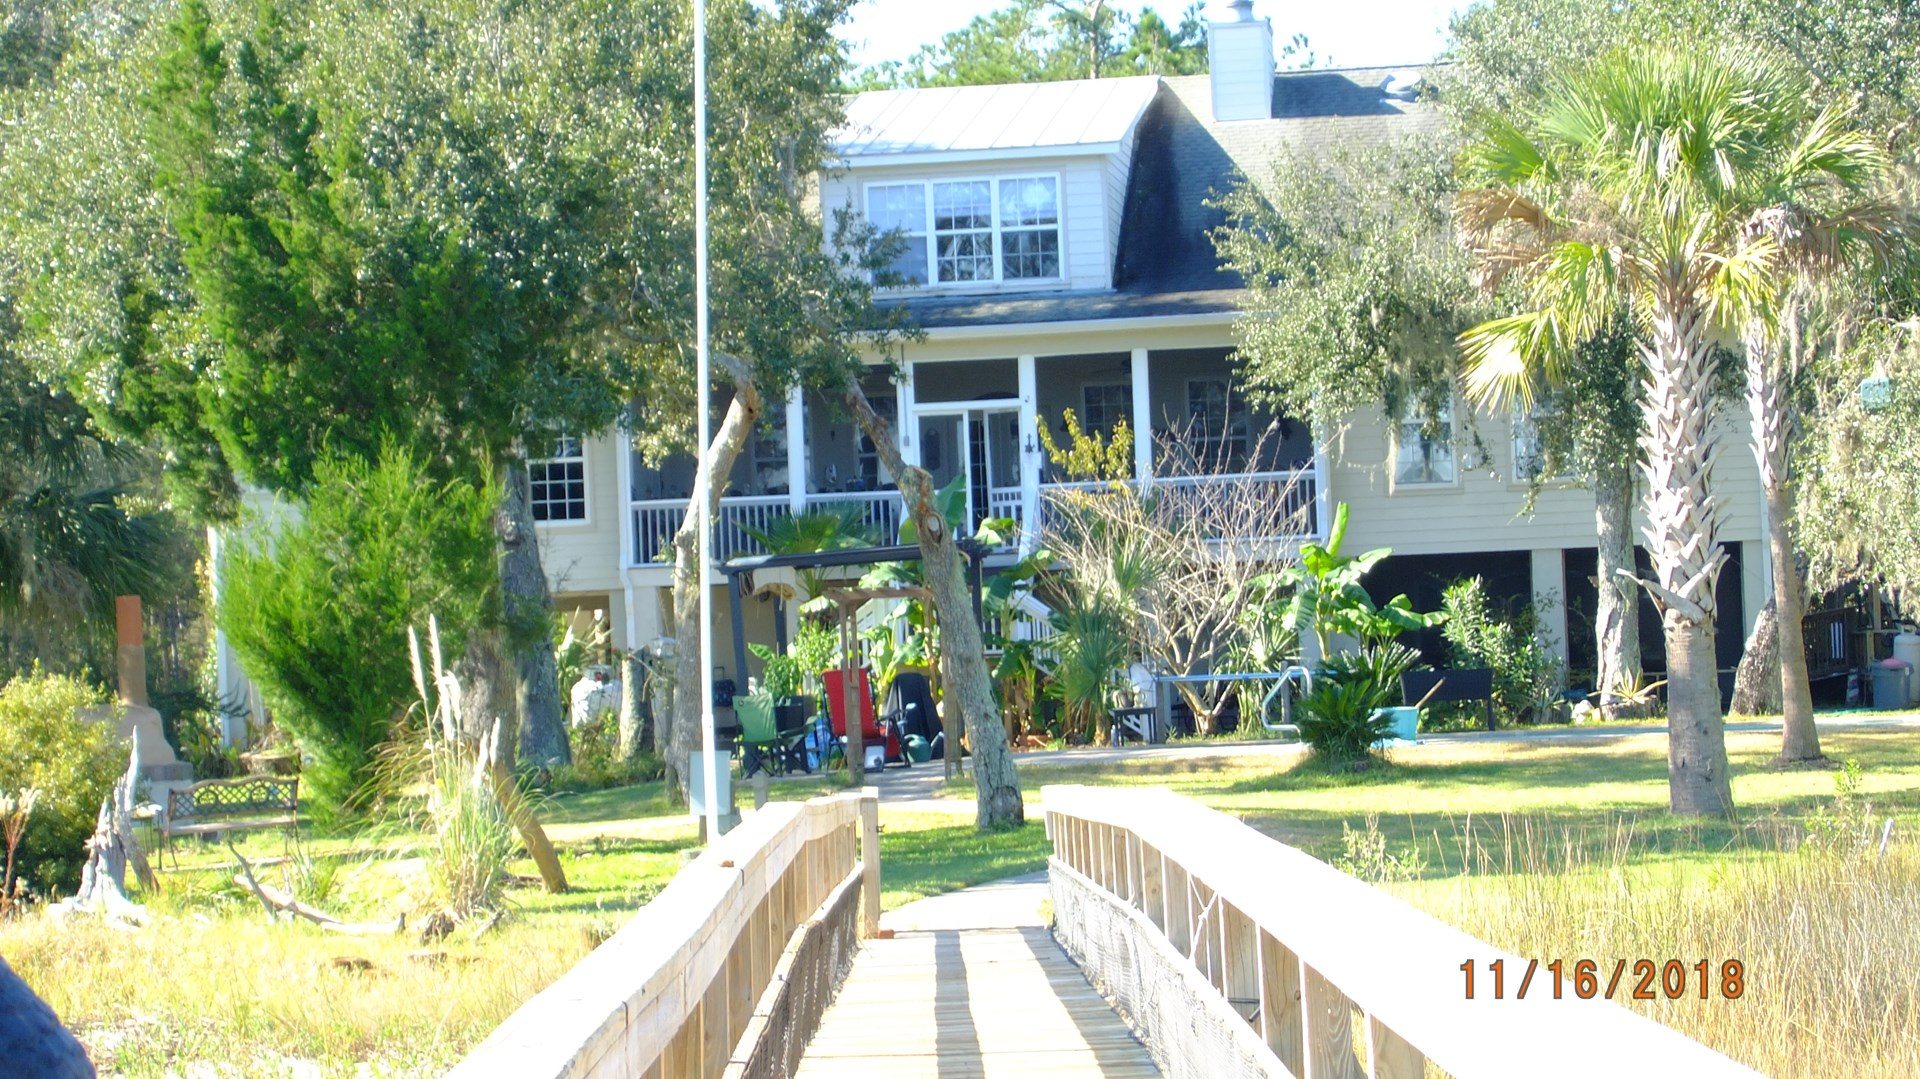 Waterfront Custom Home on 6.7 AC with Dock and Boat-lift!